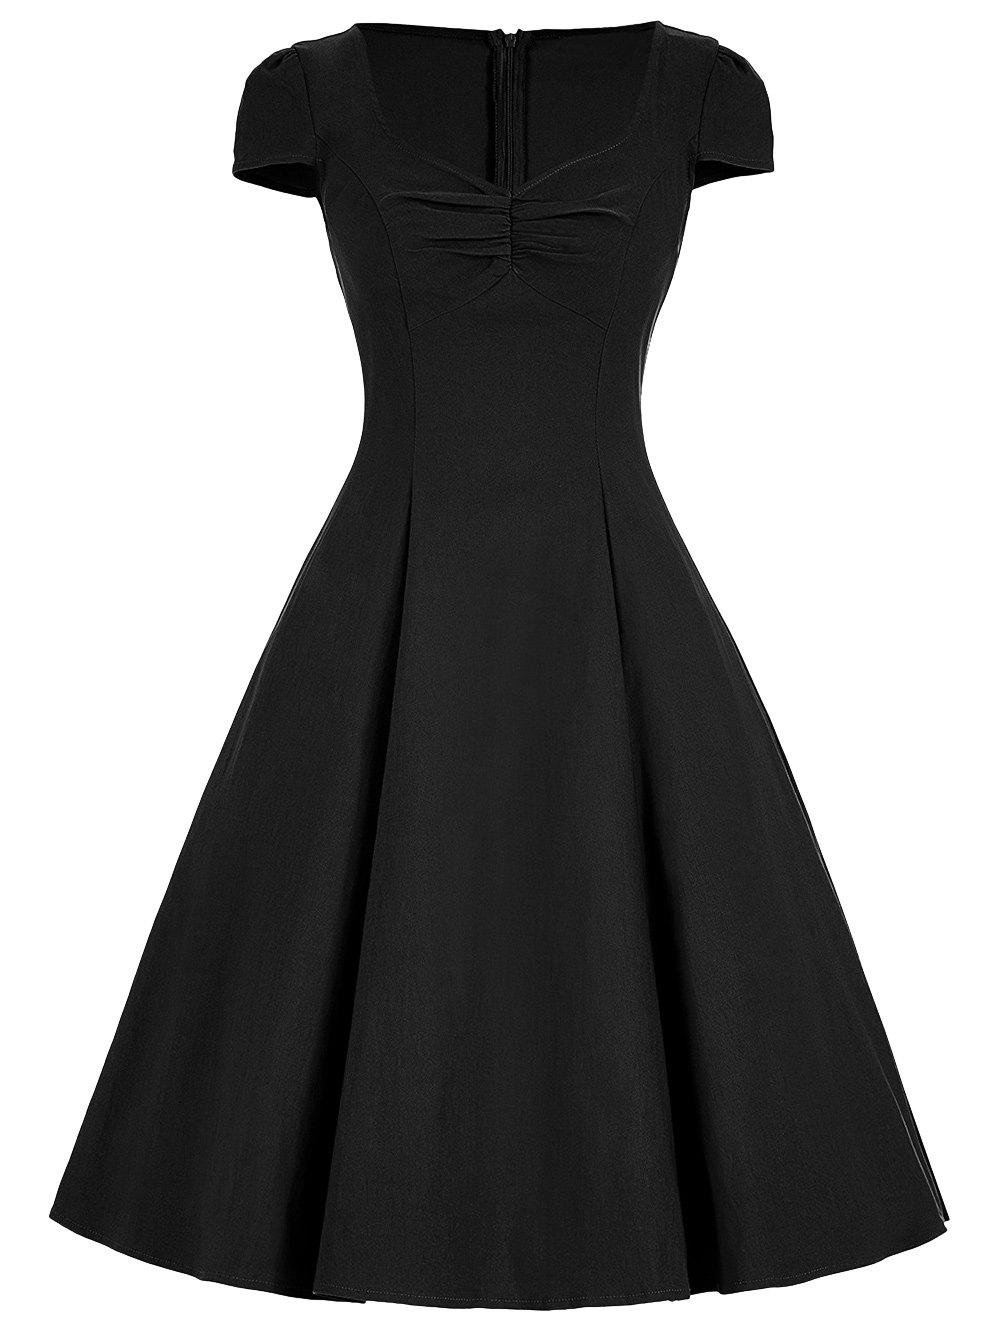 Sweetheart A Line Vintage DressWOMEN<br><br>Size: XL; Color: BLACK; Style: Vintage; Material: Polyester; Silhouette: A-Line; Dresses Length: Knee-Length; Neckline: Sweetheart Neck; Sleeve Length: Short Sleeves; Embellishment: Ruched; Pattern Type: Solid Color; With Belt: No; Season: Fall,Spring; Weight: 0.3300kg; Package Contents: 1 x Dress;